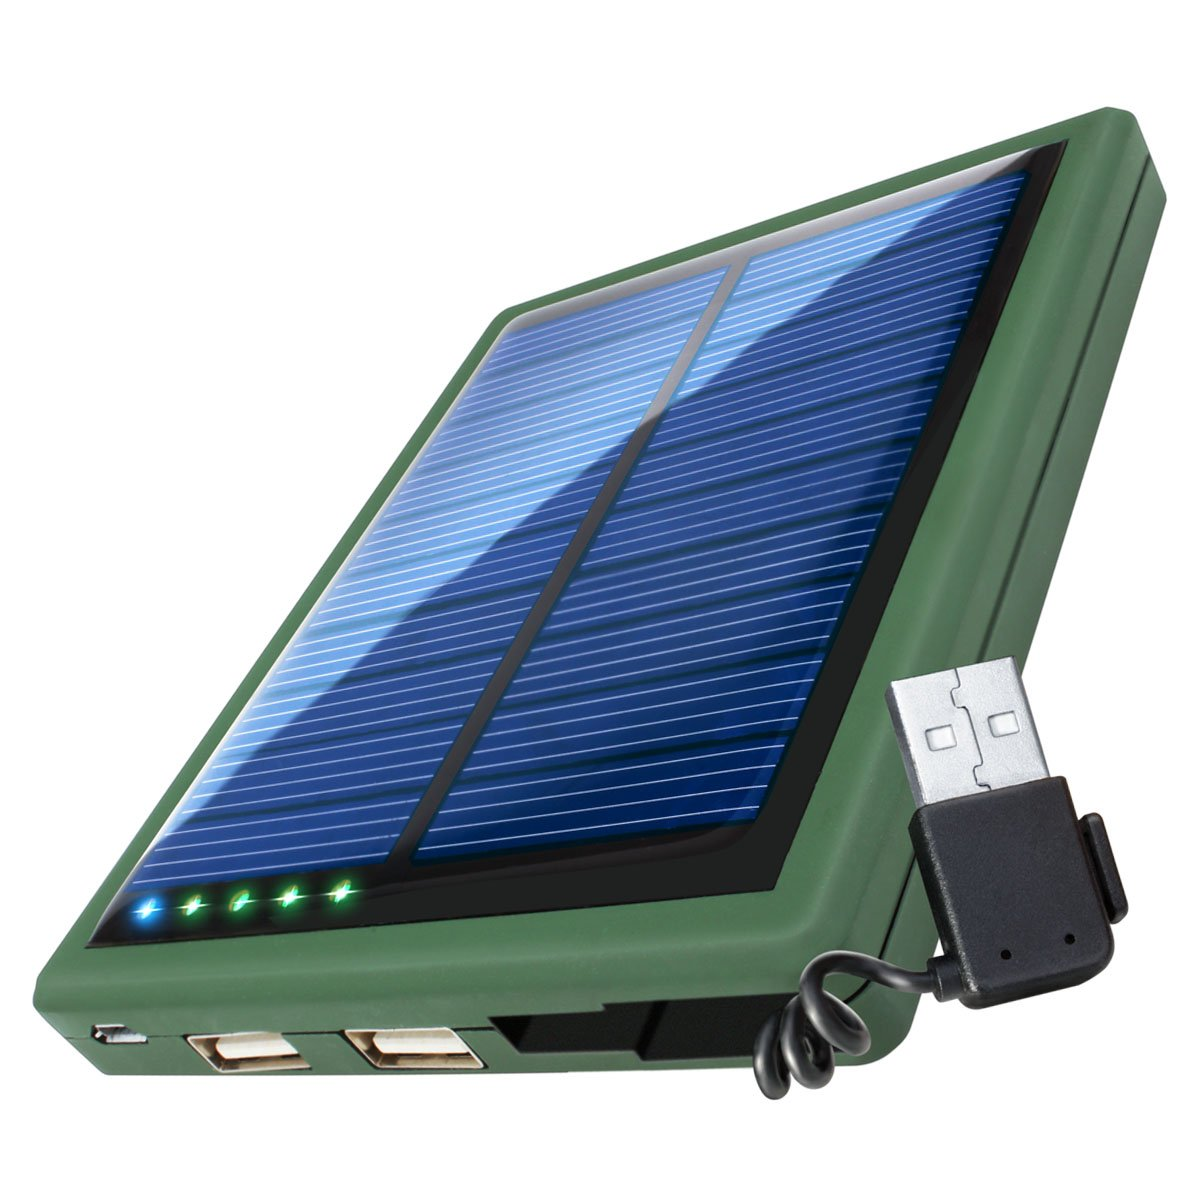 Revive 5000mAh Solar Power Bank Phone Charger with Emergency Backup Solar Panel Dual USB Port Portable External Battery Pack for Charging Phones, Bluetooth Headphones, Wearables, More